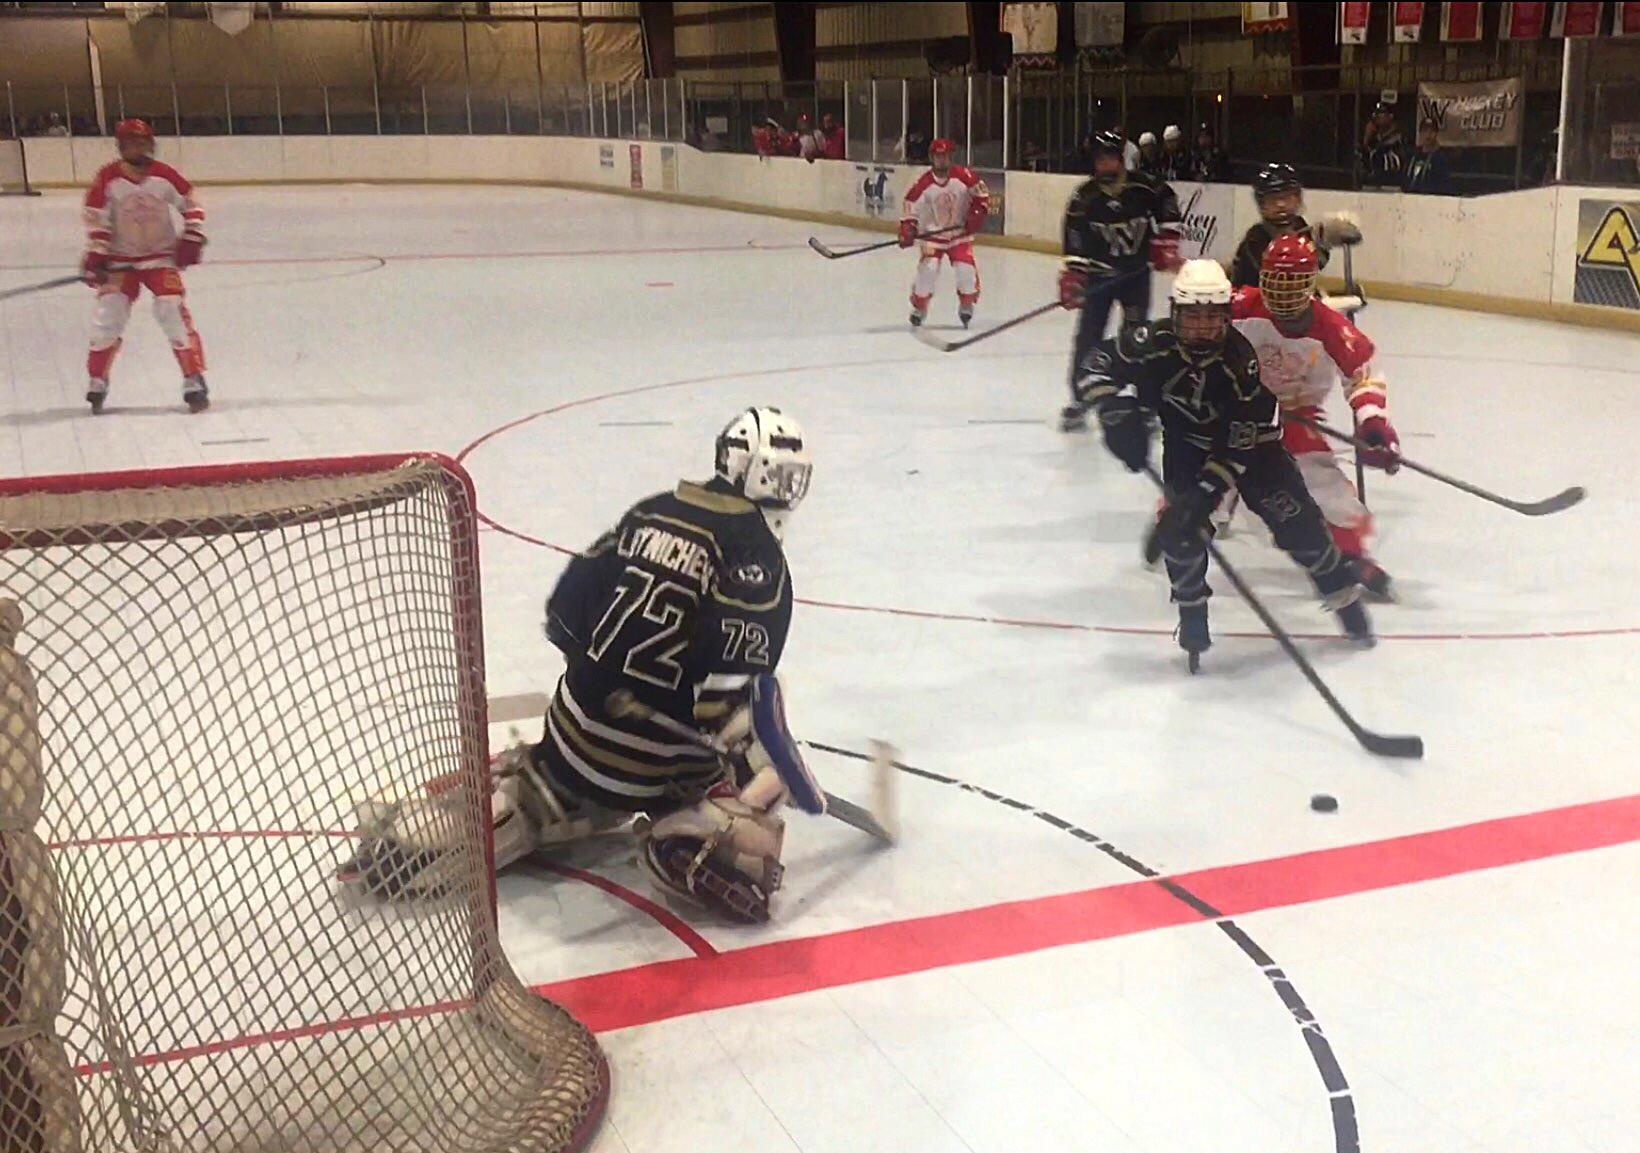 Westview High School's Josh Morrison '17 steals the puck from Cathedral Catholic High School's John Leone '16 11 minutes into the third period of the CIF championship match  Wednesday evening. The contest marked the end of another fine season for the CCHS inline hockey team.